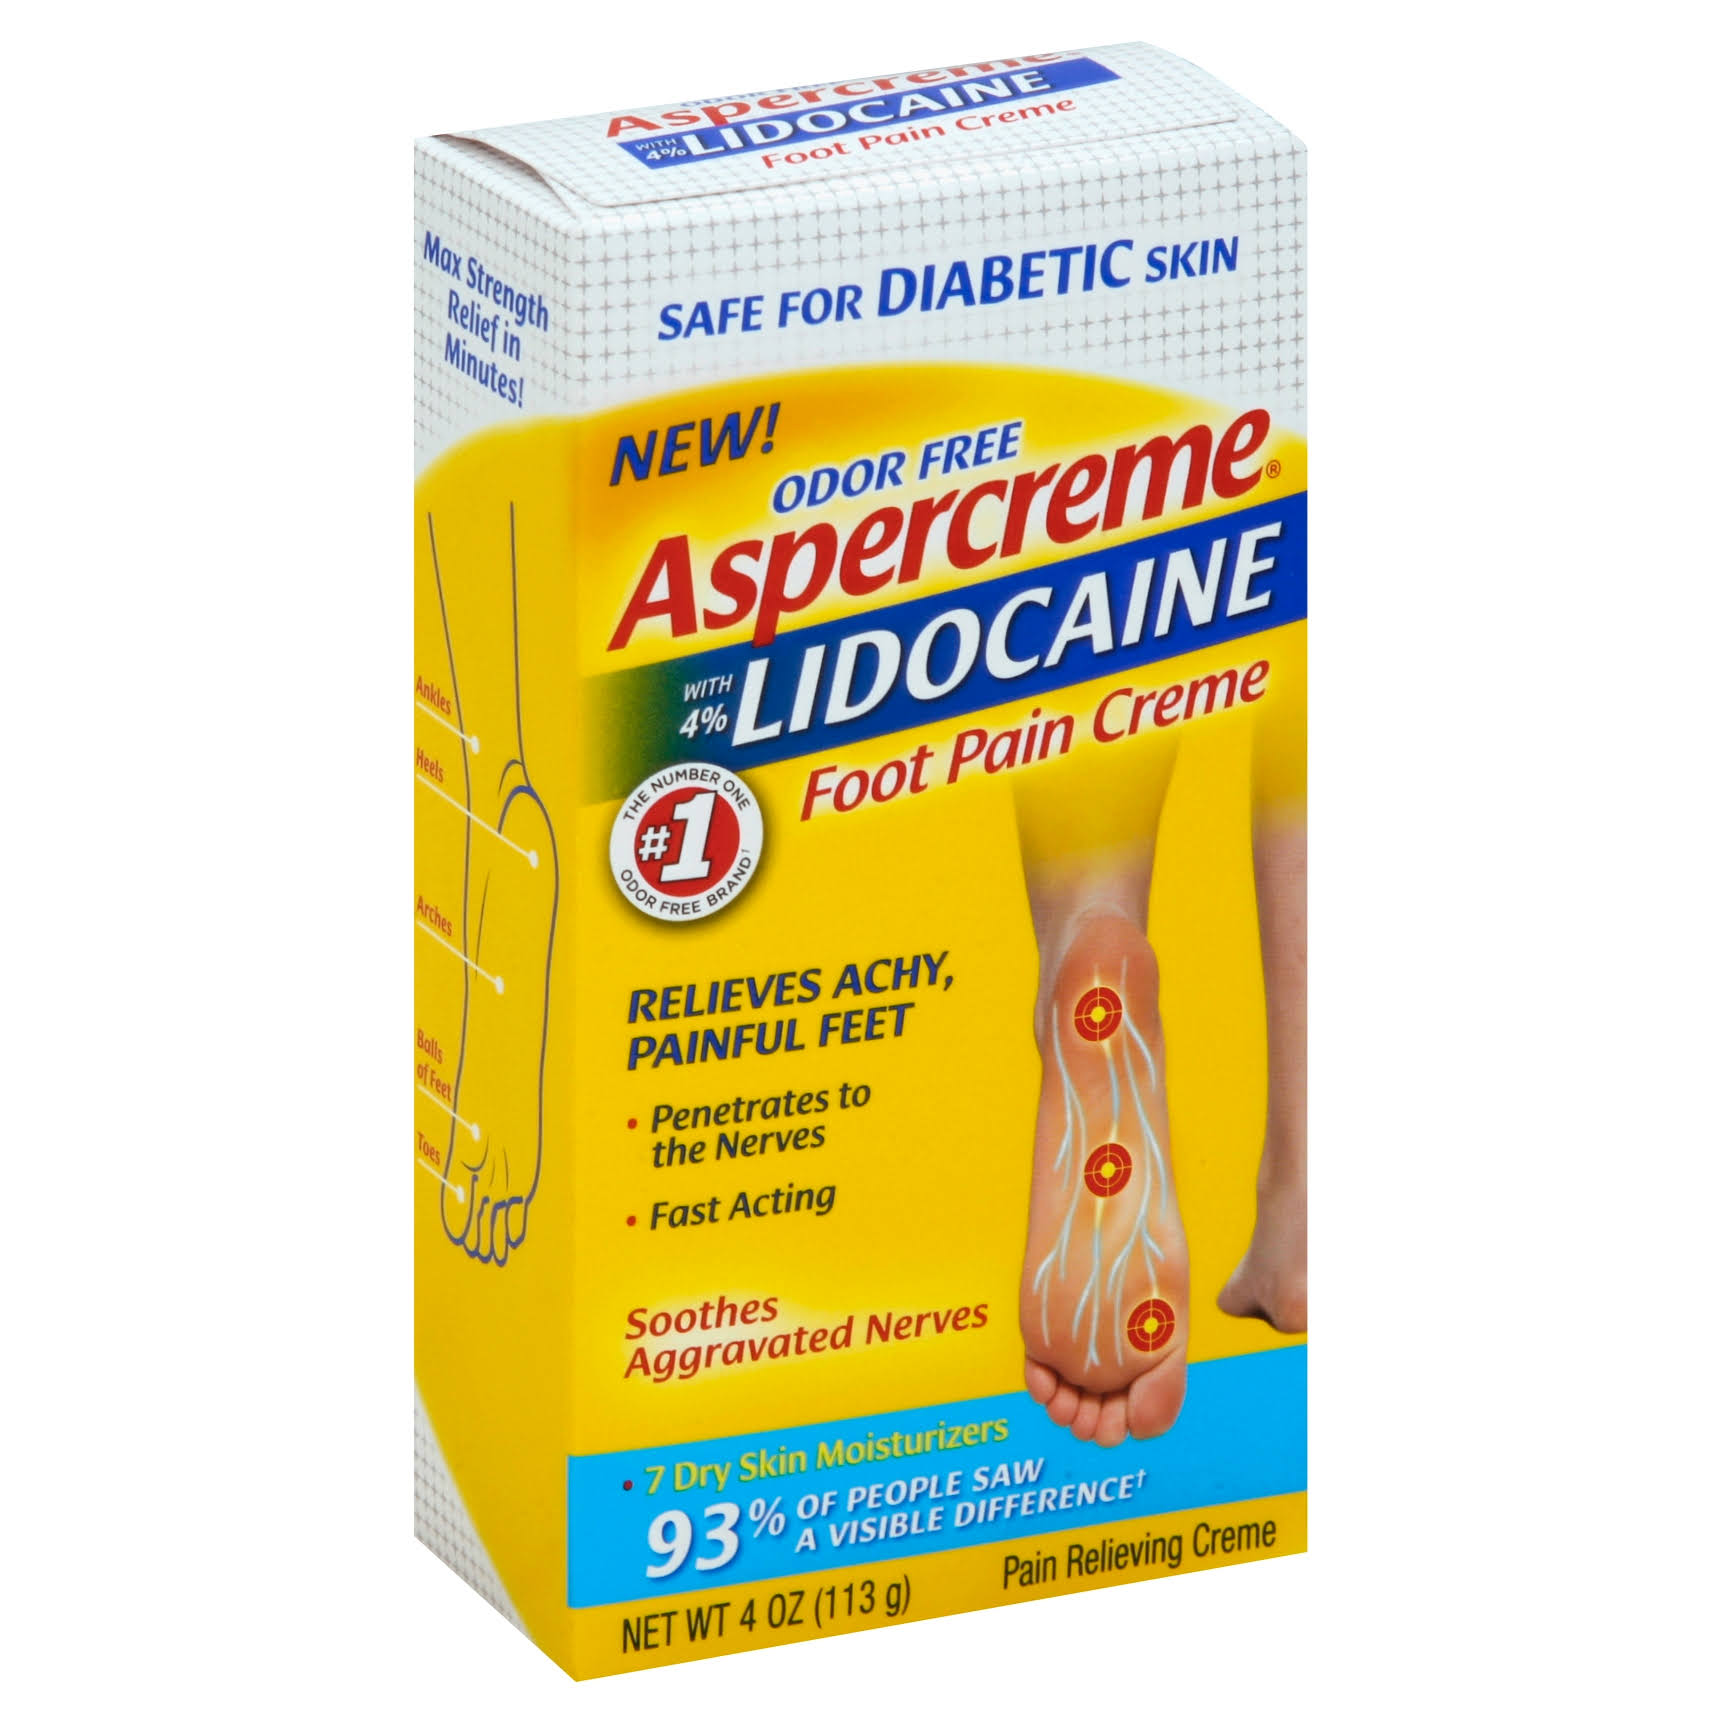 Aspercreme Foot Pain Creme, with 4% Lidocaine, Odor Free - 4 oz